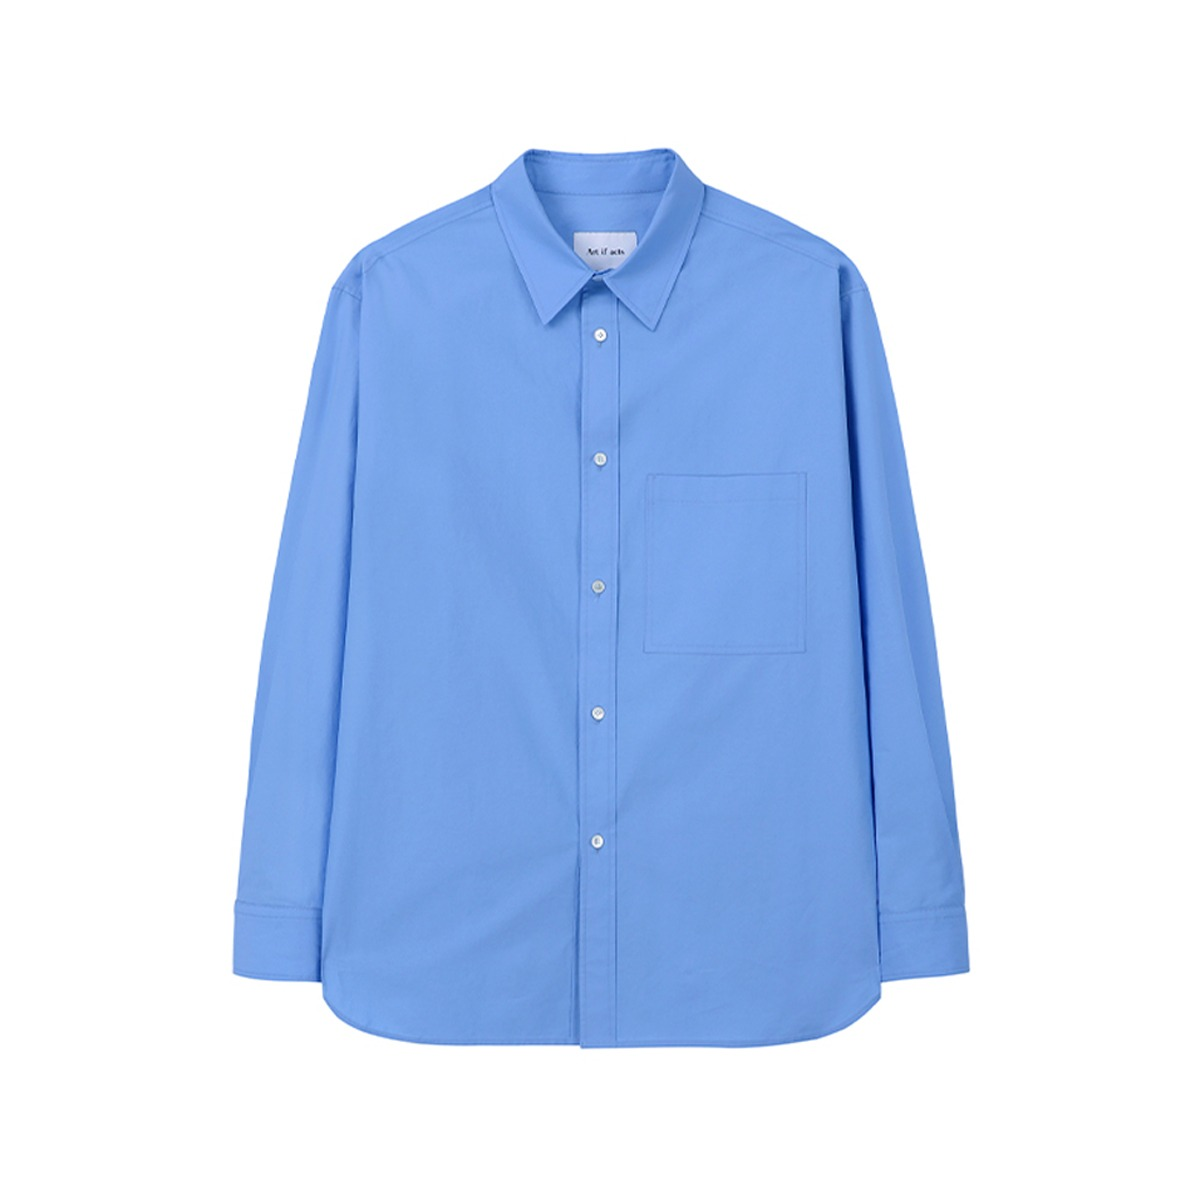 [ART IF ACTS] SOLID POCKET SHIRT 'SAX BLUE'